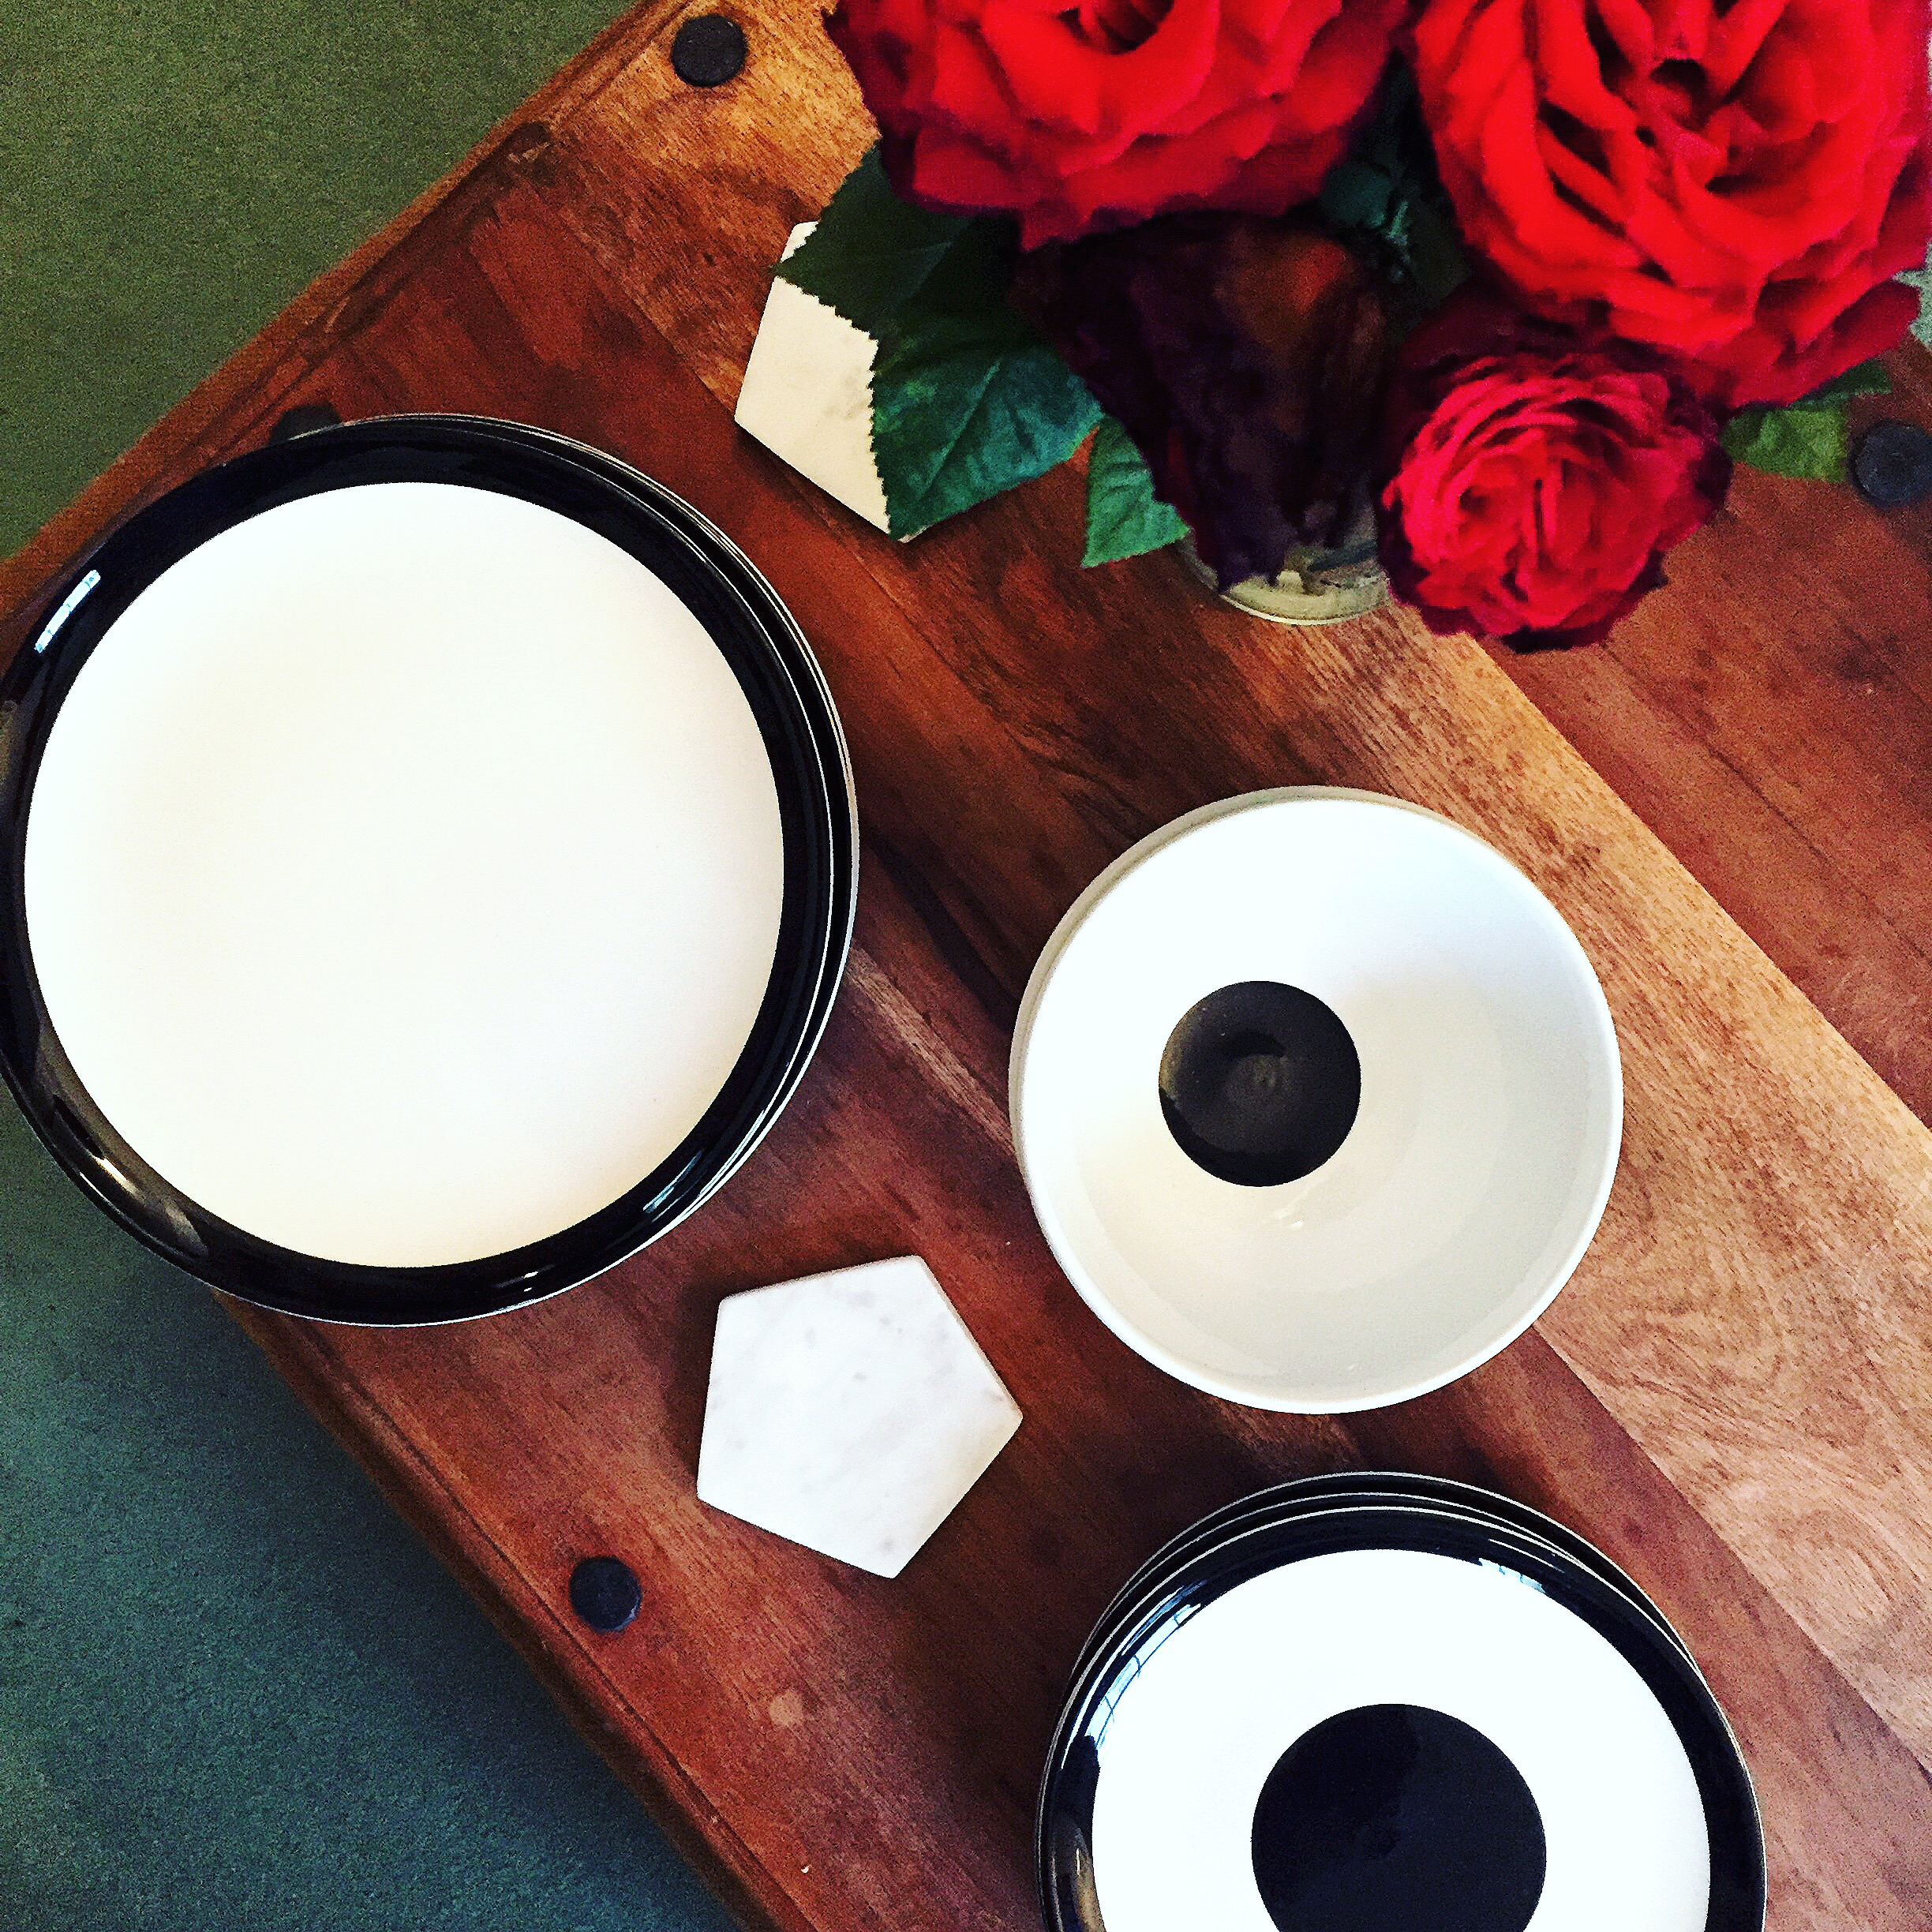 made-dot-com-plates-decor-cheltenham-blogger-blog.JPG